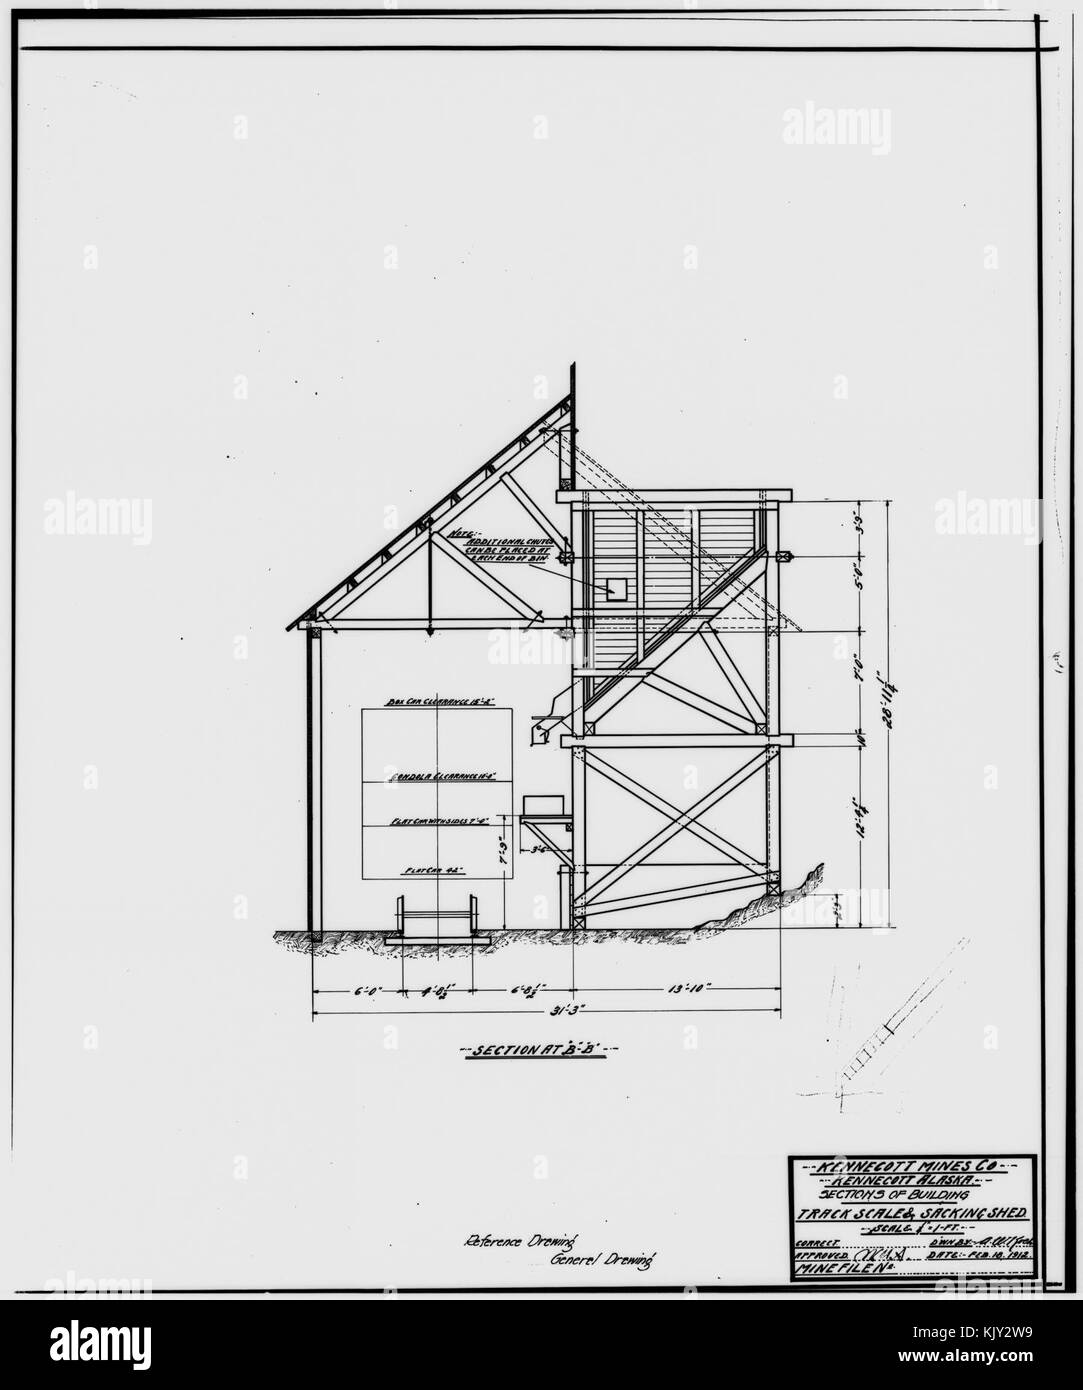 41. PHOTOCOPY OF DRAWING OF TRACK SCALE AND SACKING SHED, SECTIONS OF BUILDINGS   Kennecott Copper Corporation, - Stock Image